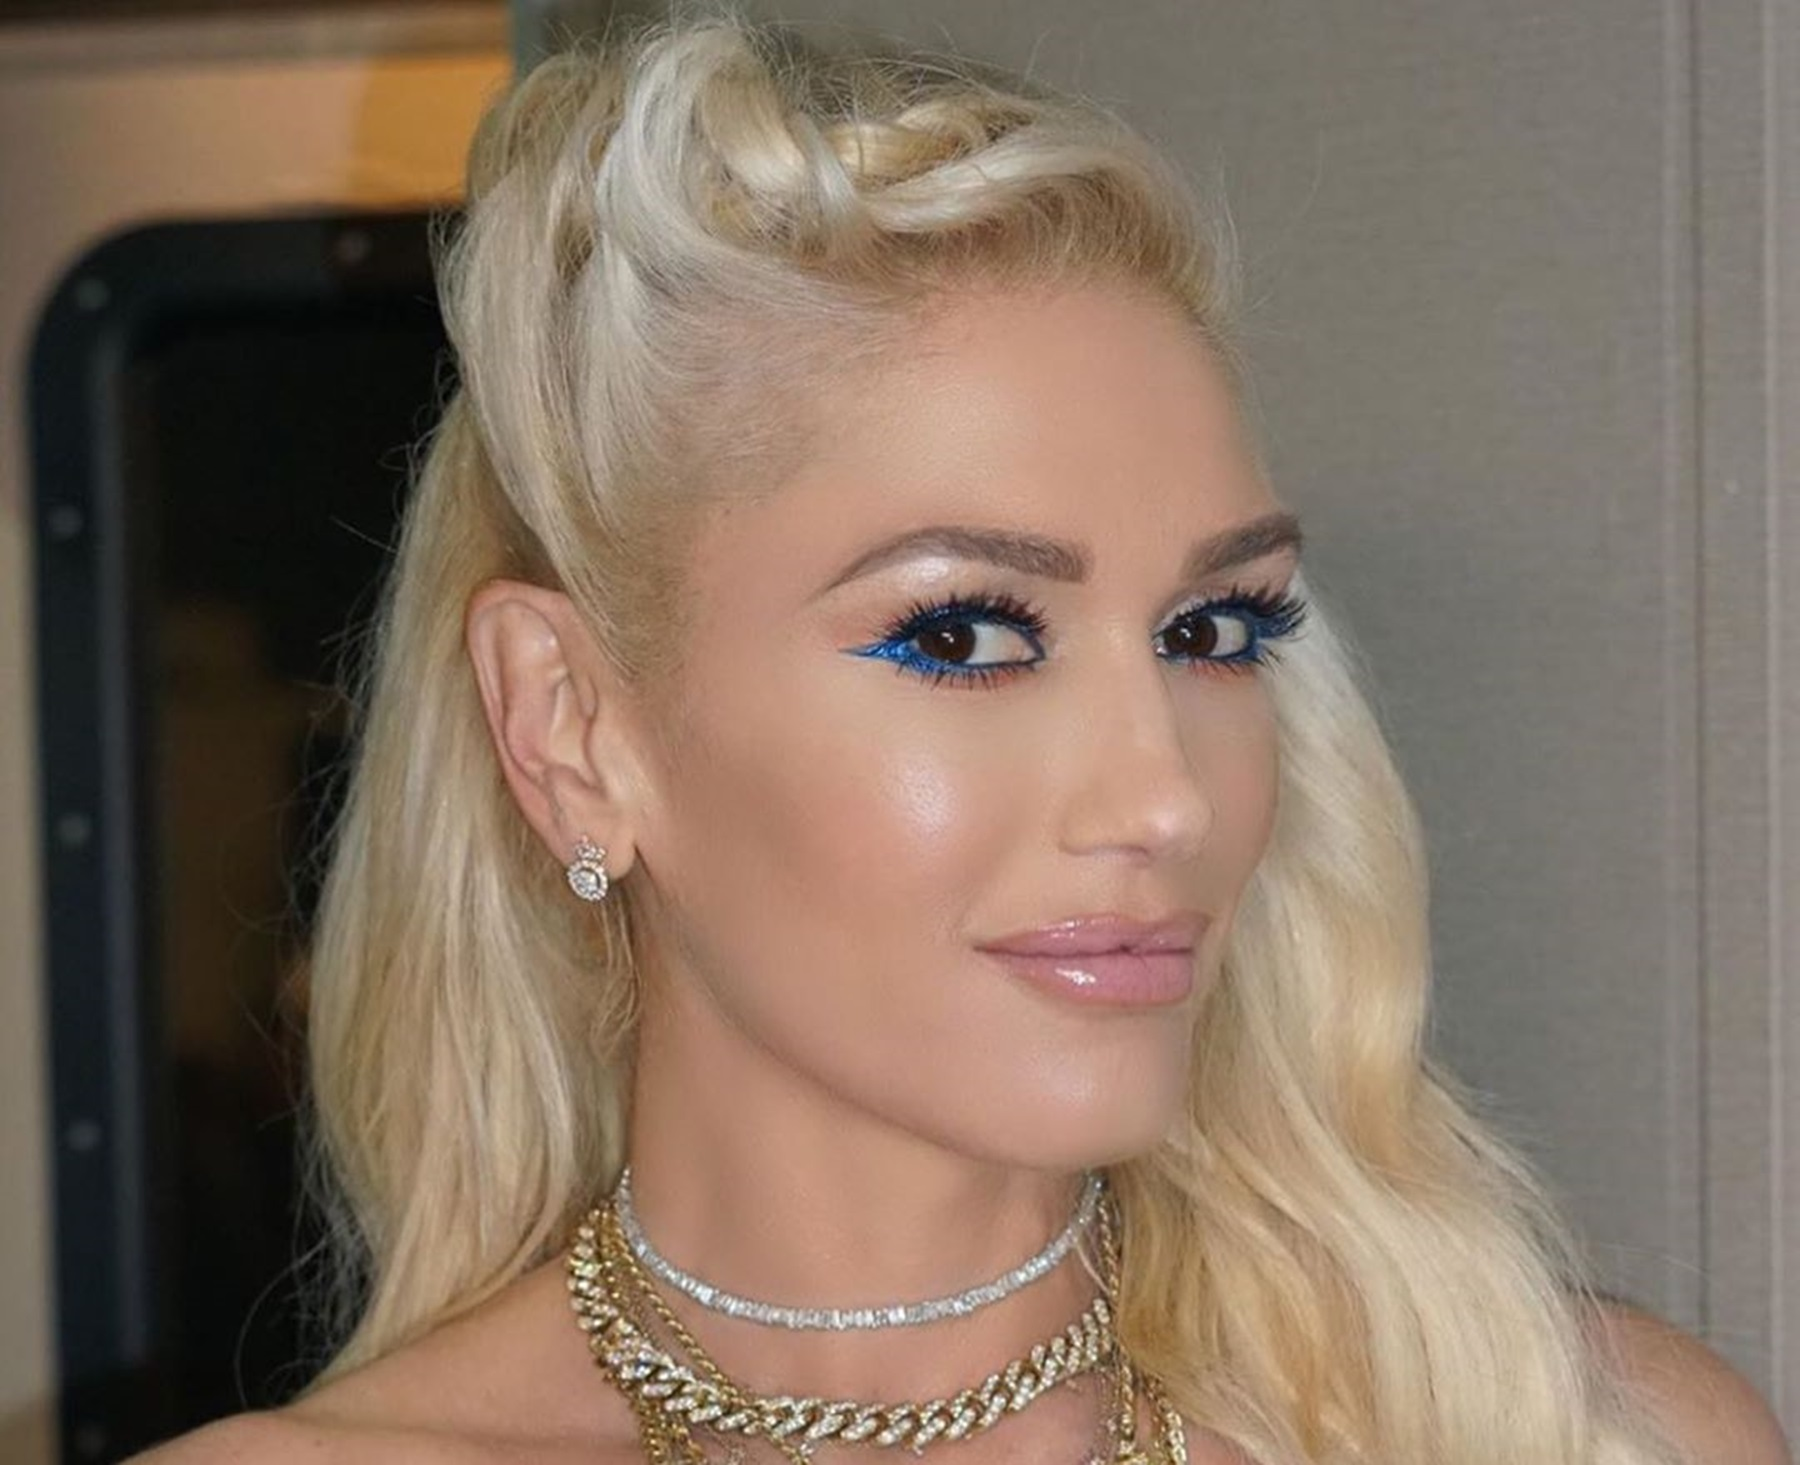 """""""gwen-stefani-blows-up-social-media-ahead-of-her-50th-birthday-in-mini-dress-video-proves-blake-shelton-is-very-lucky"""""""